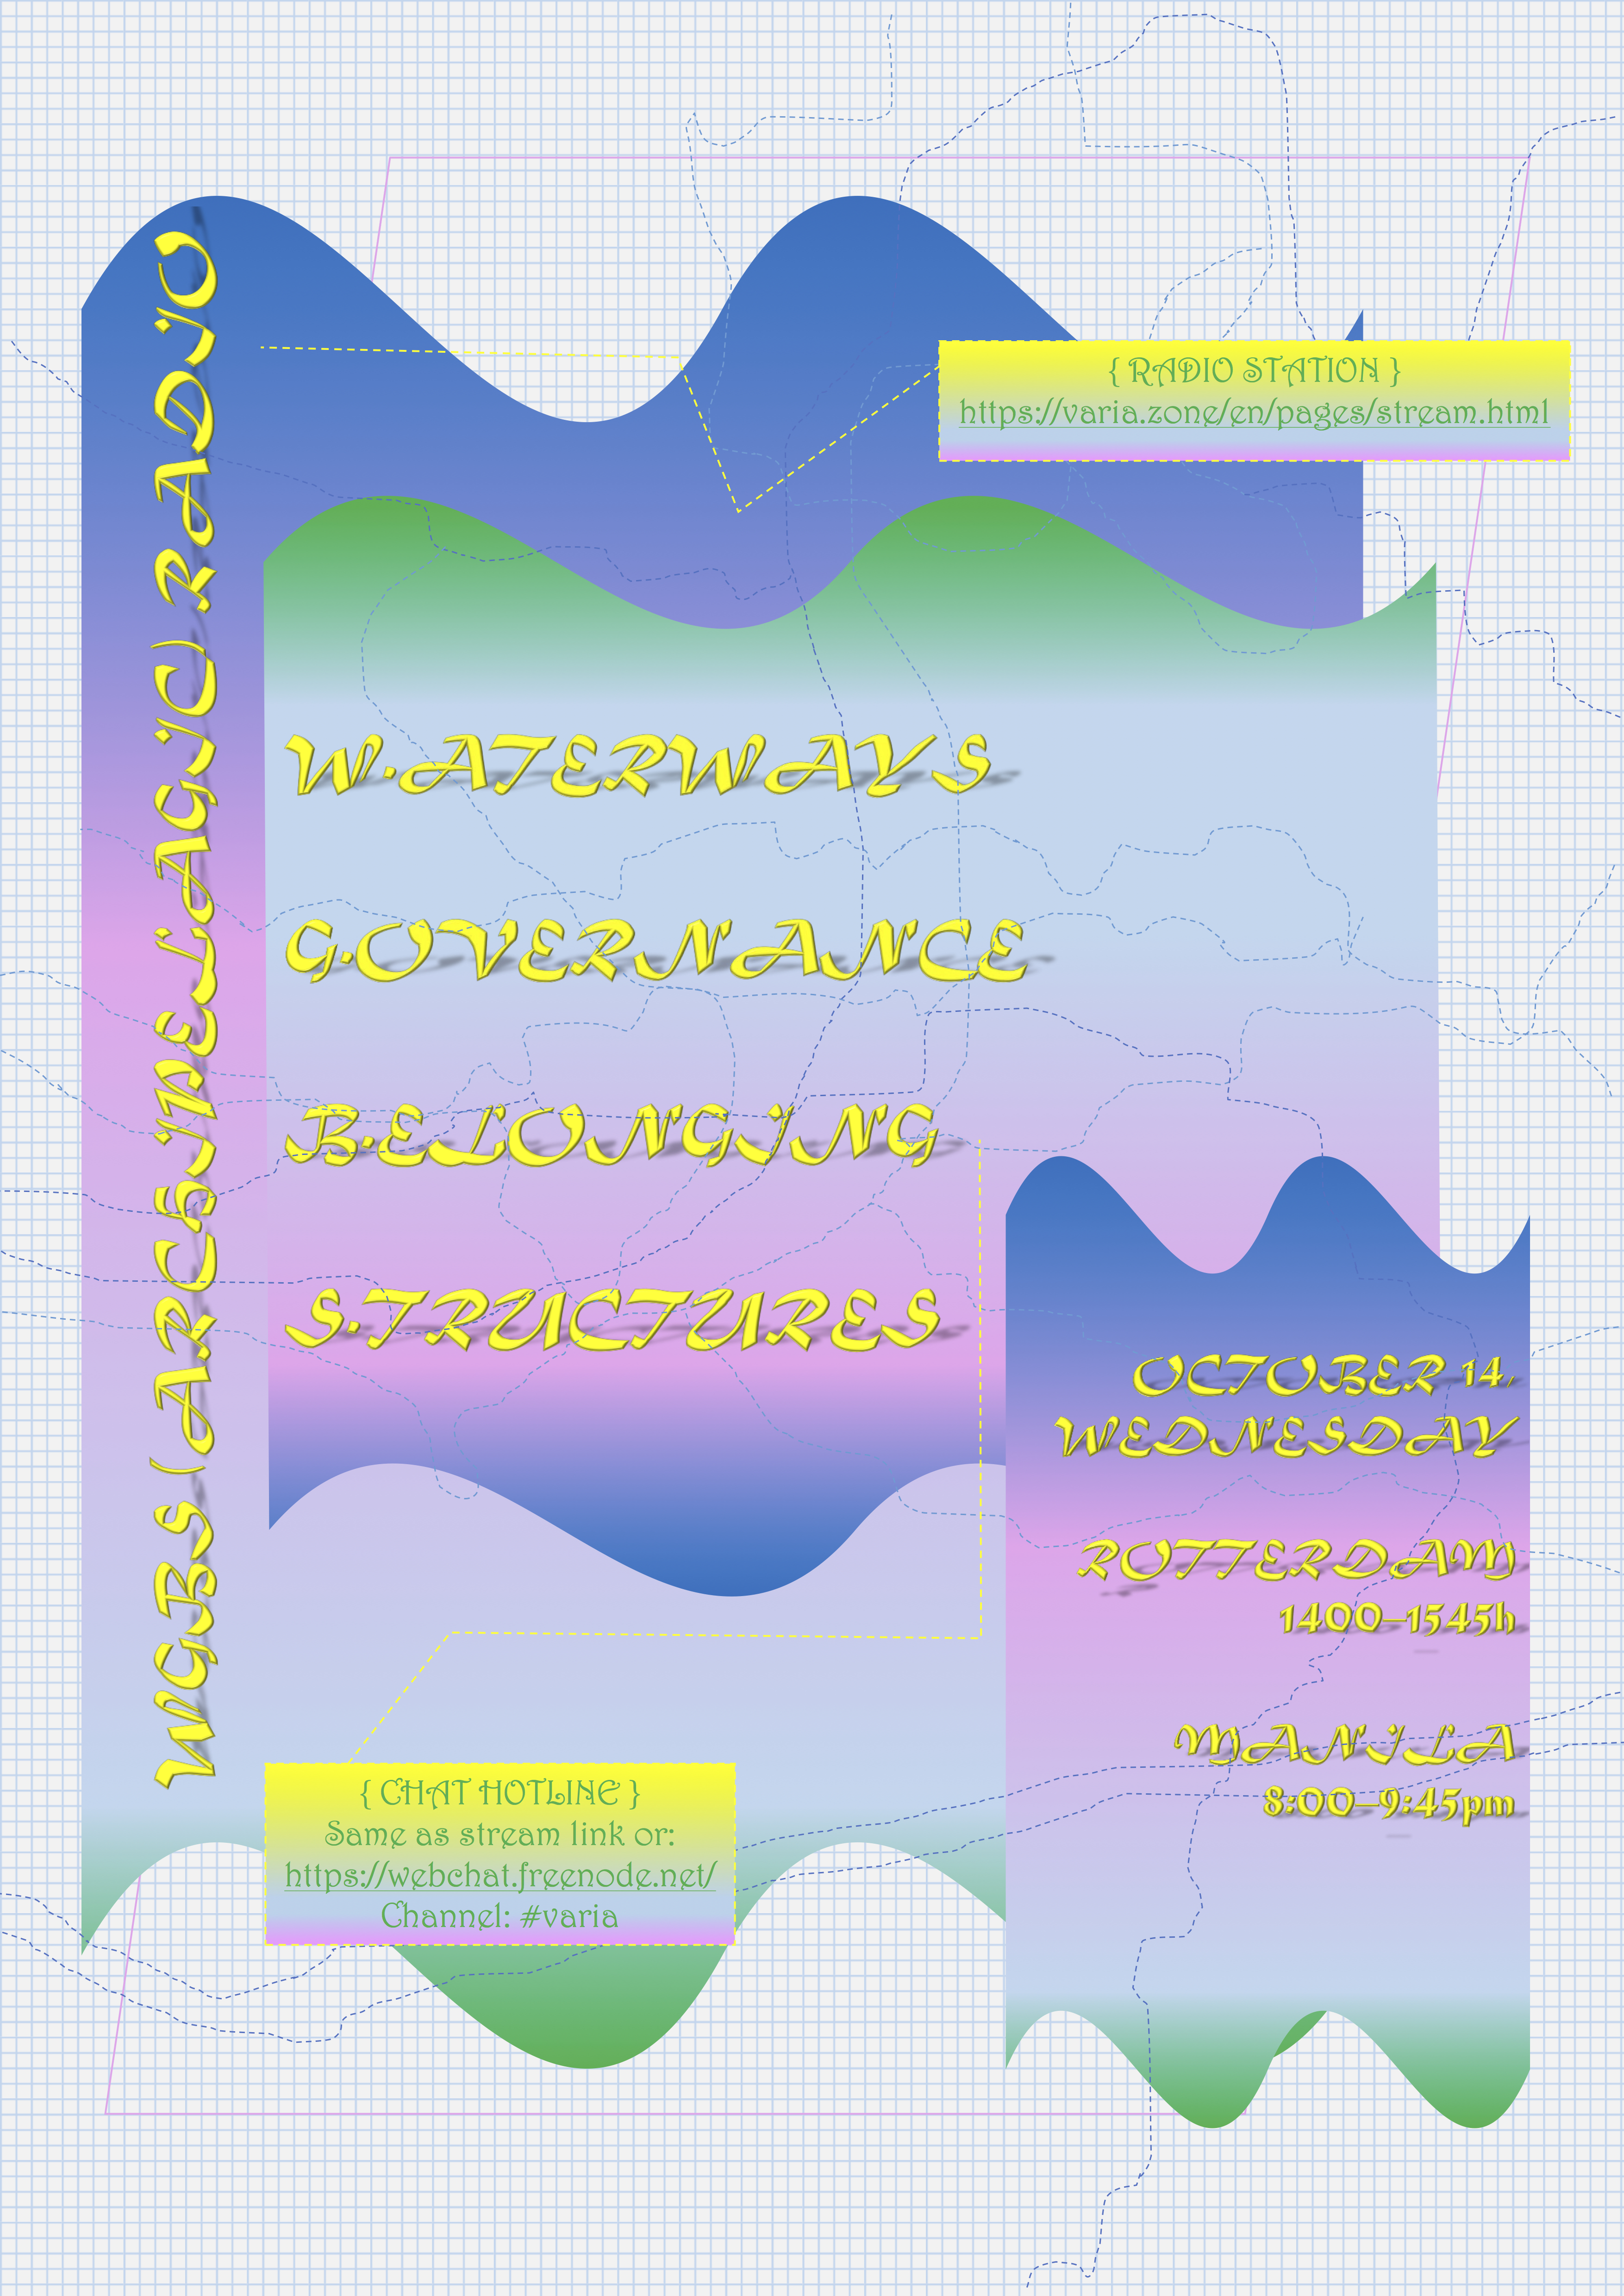 Flier for WGBS (Archipelagic) RADIO.jpg